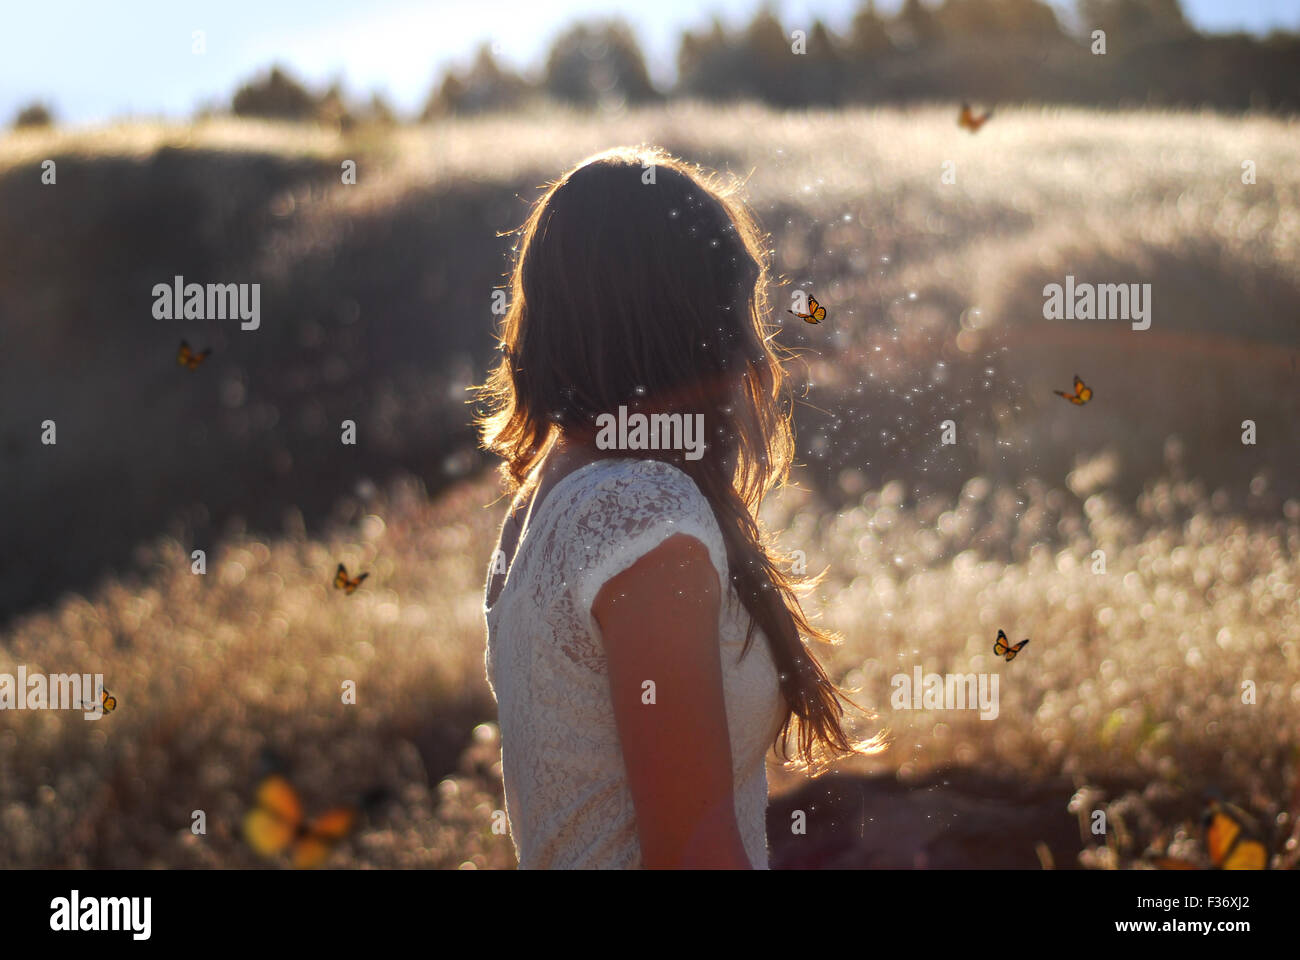 Girl in the golden hour en robe blanche avec les papillons volant autour d'elle Photo Stock